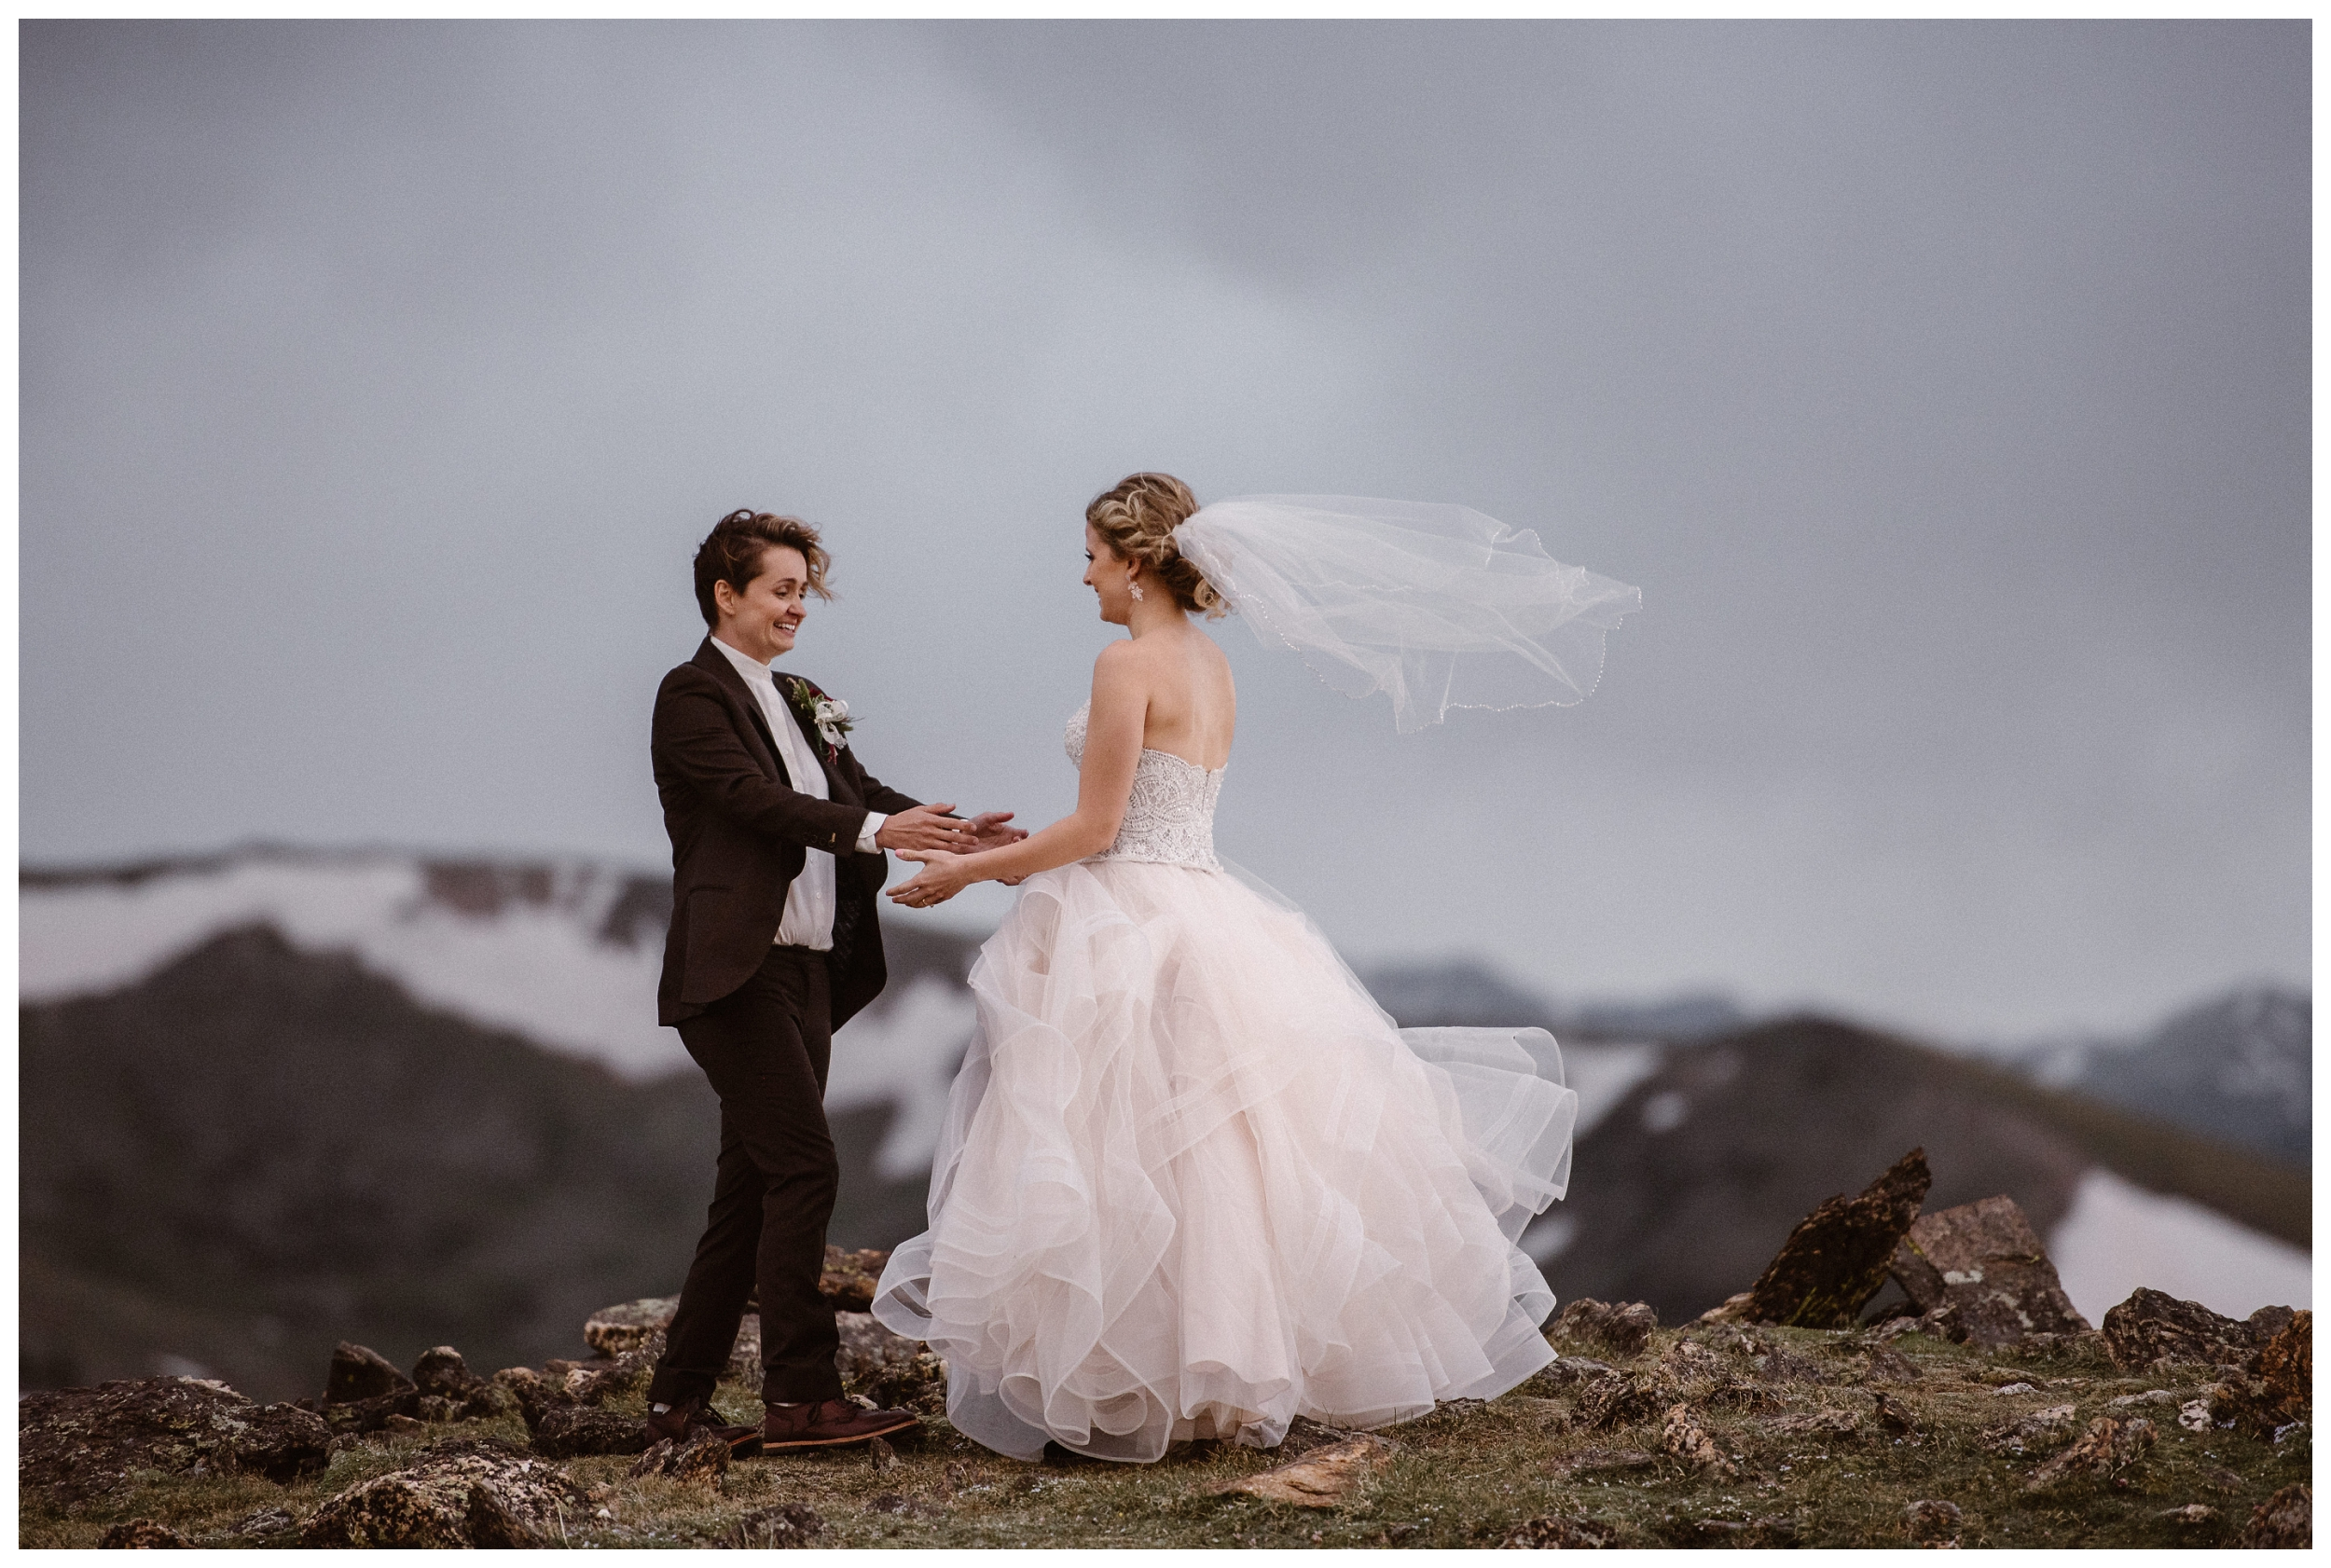 Embrace your partner and all the emotions that come with a wedding day during your elopement. Where you elope and how you say your vows matters! Photo by Maddie Mae, Adventure Instead Elopement Photographers.